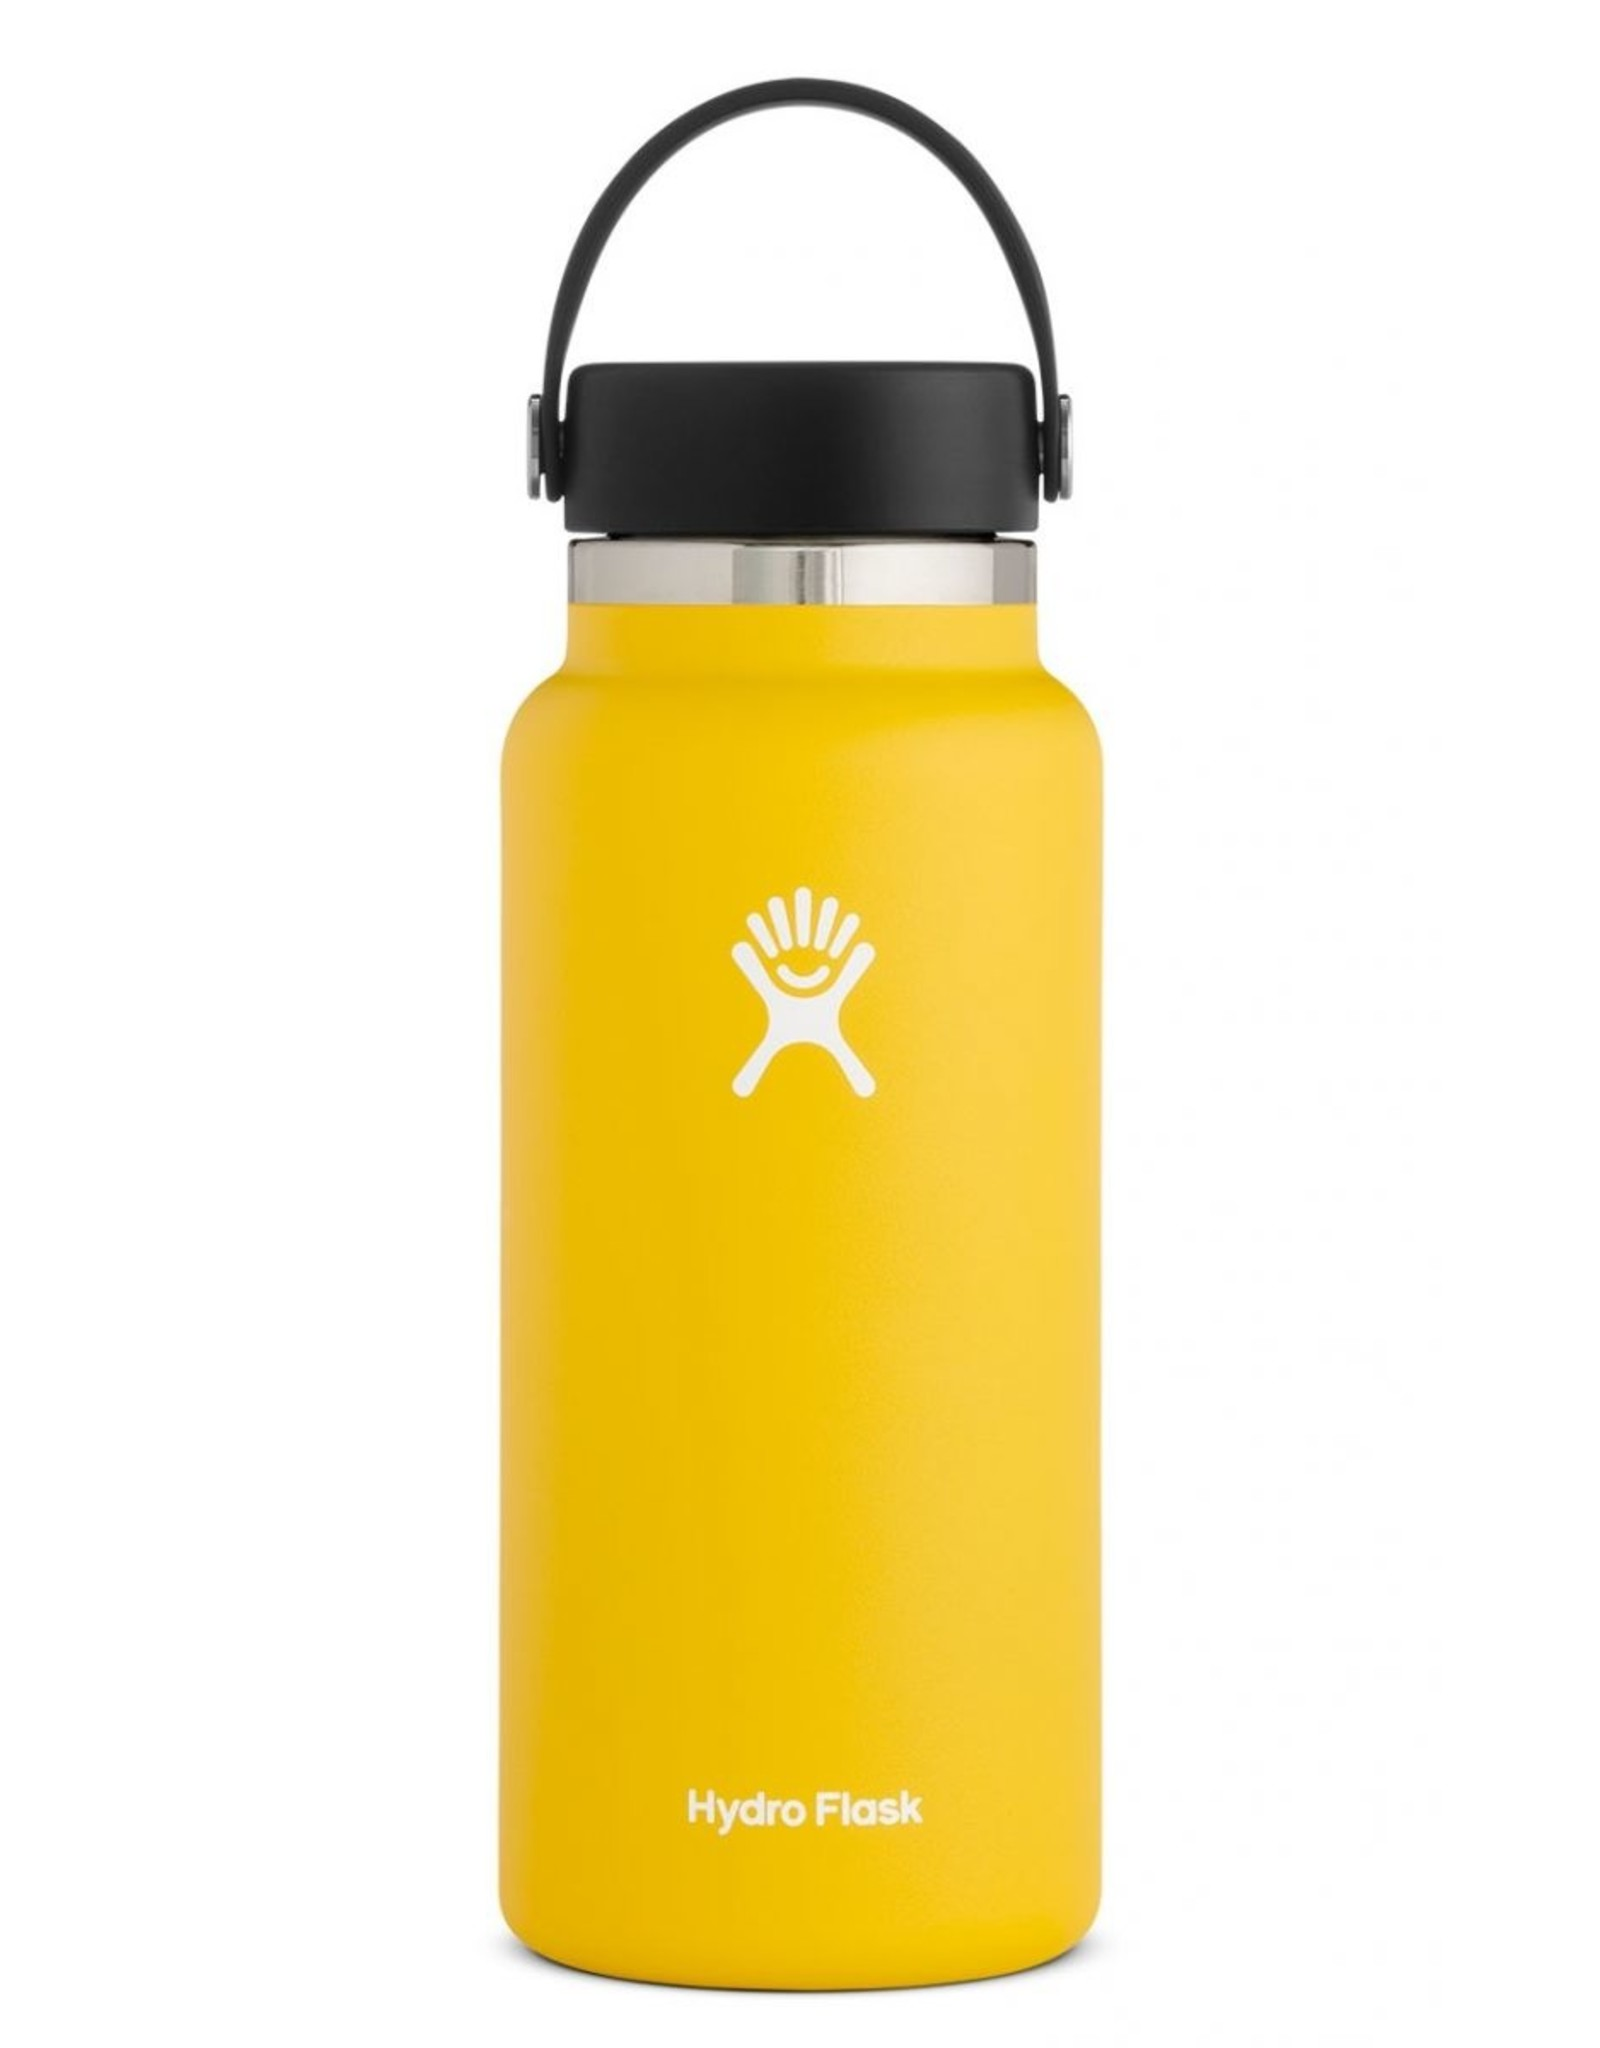 HYDRO FLASK HYDRO FLASK 32OZ WIDE MOUTH BOTTLE-SUNFLOWER